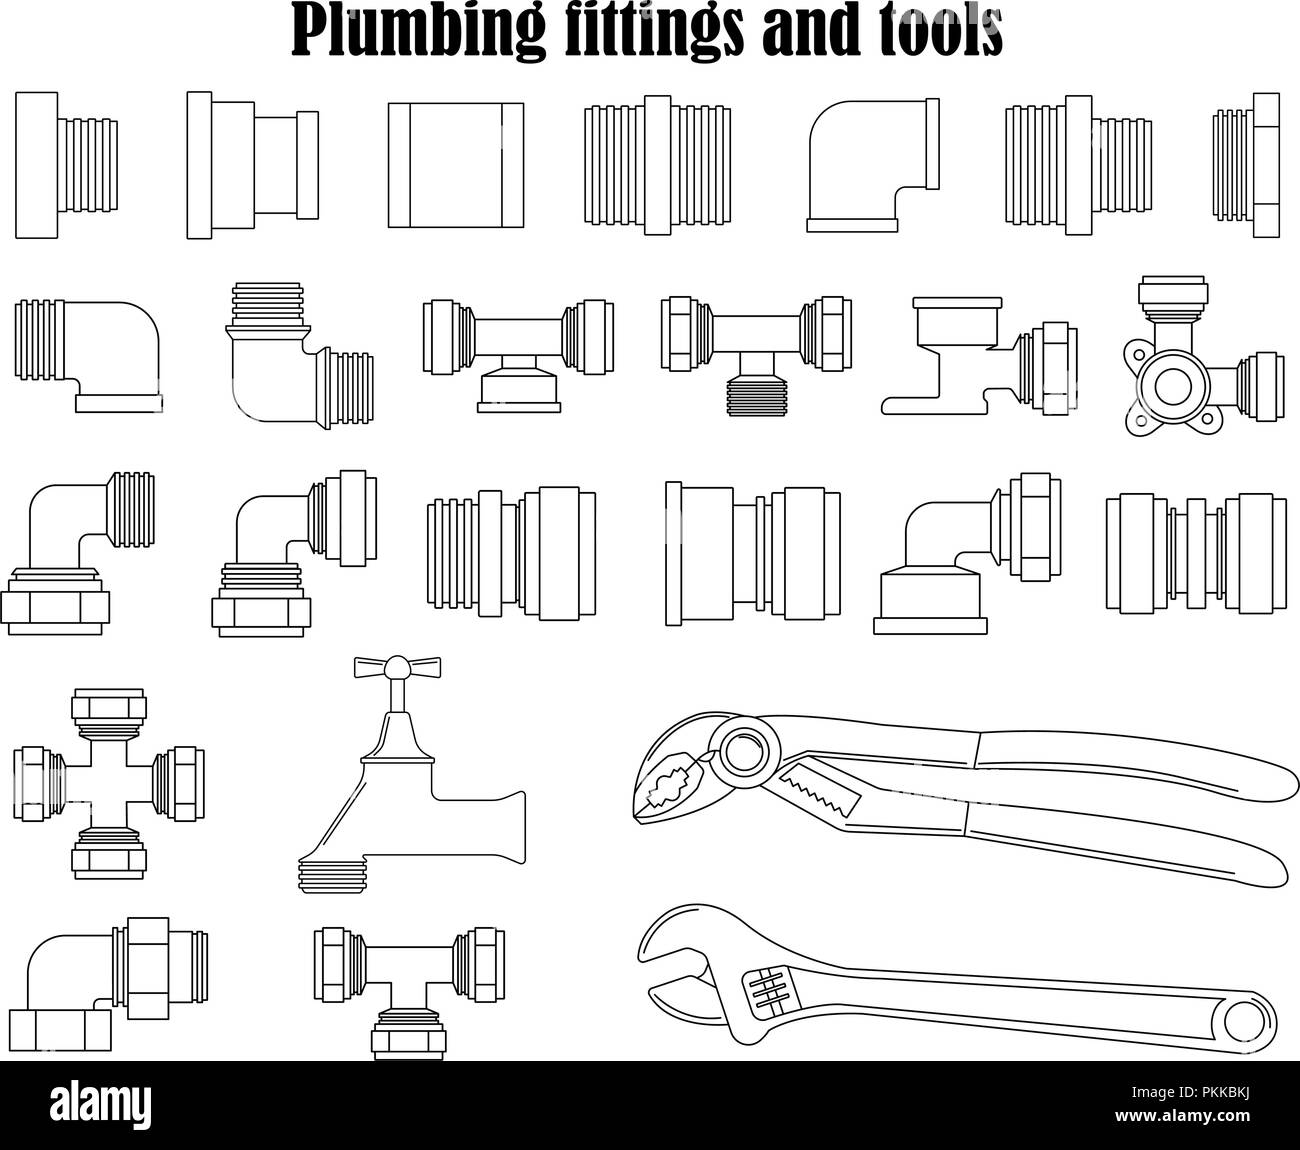 Monochrome vector set of plumbing fittings and tools. - Stock Image